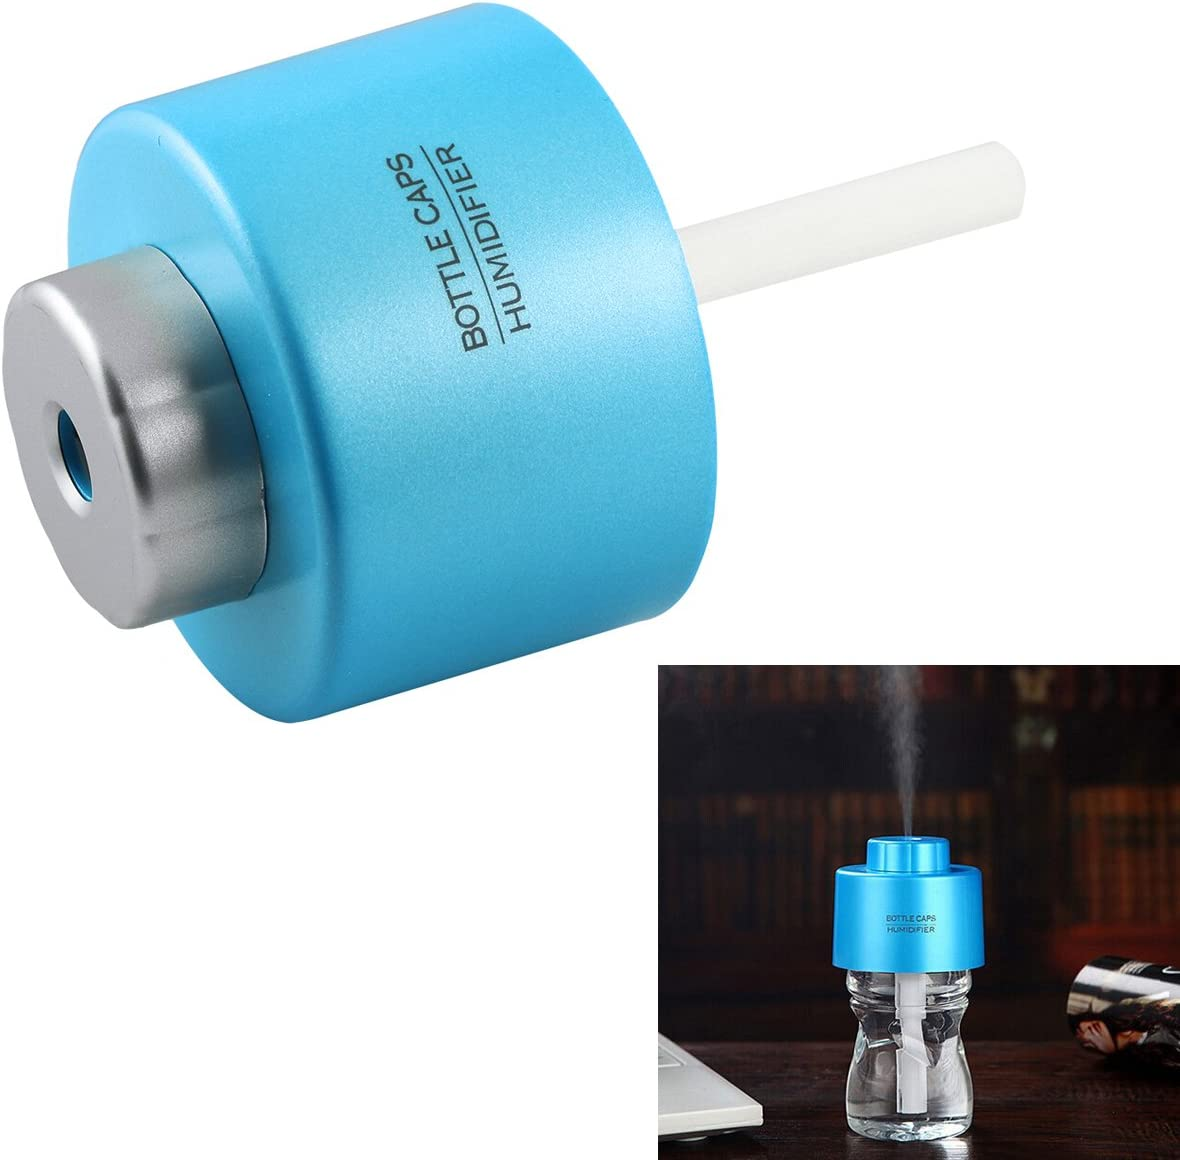 Mini Portable Bottle Cap Air Humidifier with USB Cable for Office Home, White